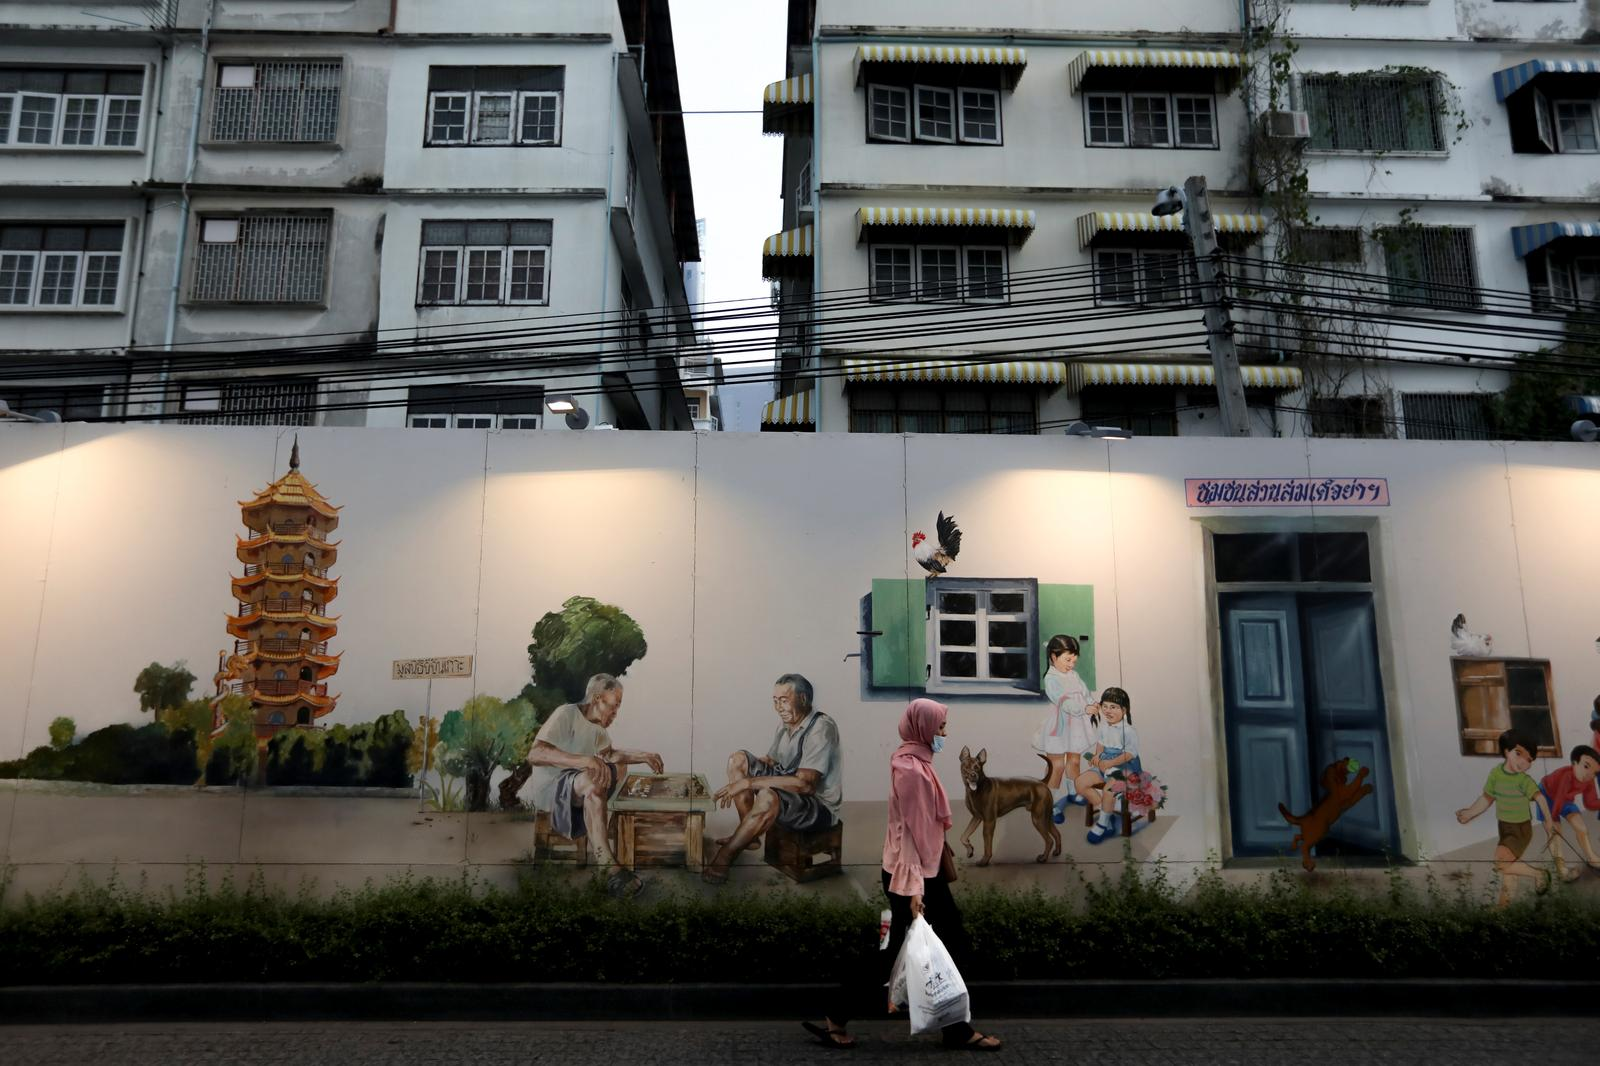 A woman walks past a mural depicting scenes of traditional street life outside Iconsiam shopping mall in Bangkok, Thailand, January 31, 2019. Photo: Reuters